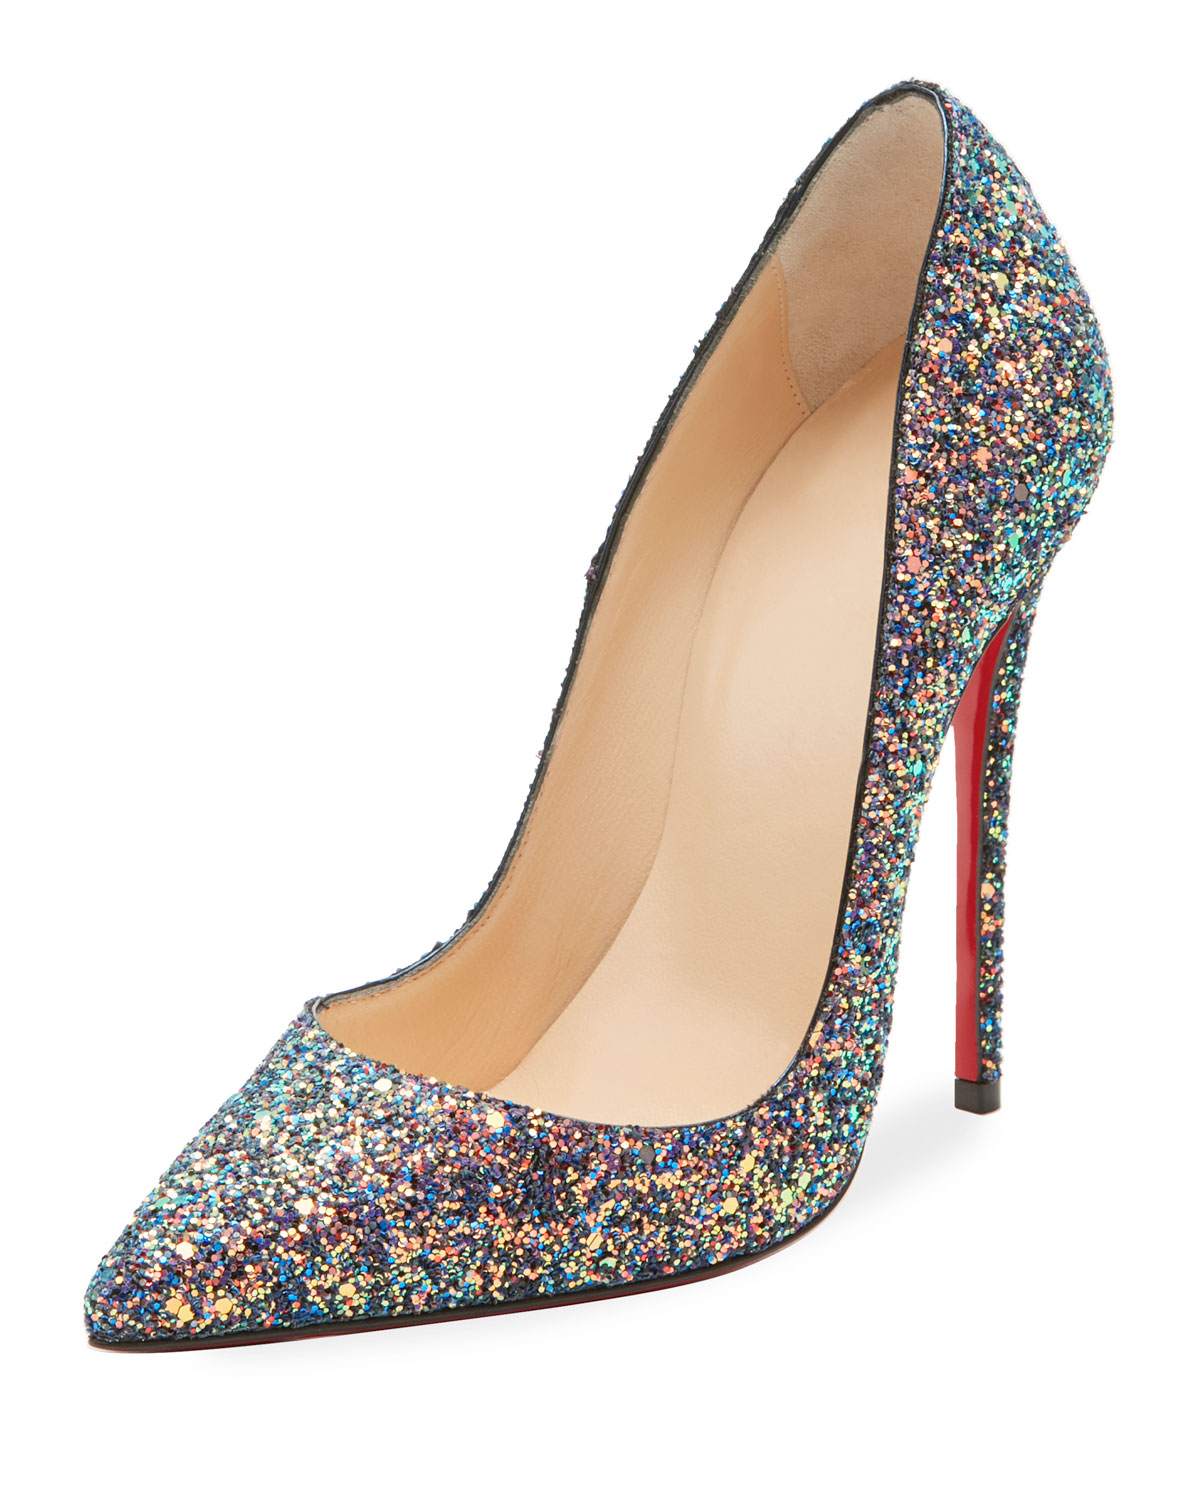 competitive price 46557 44a95 So Kate Glittered 120mm Red Sole Pump